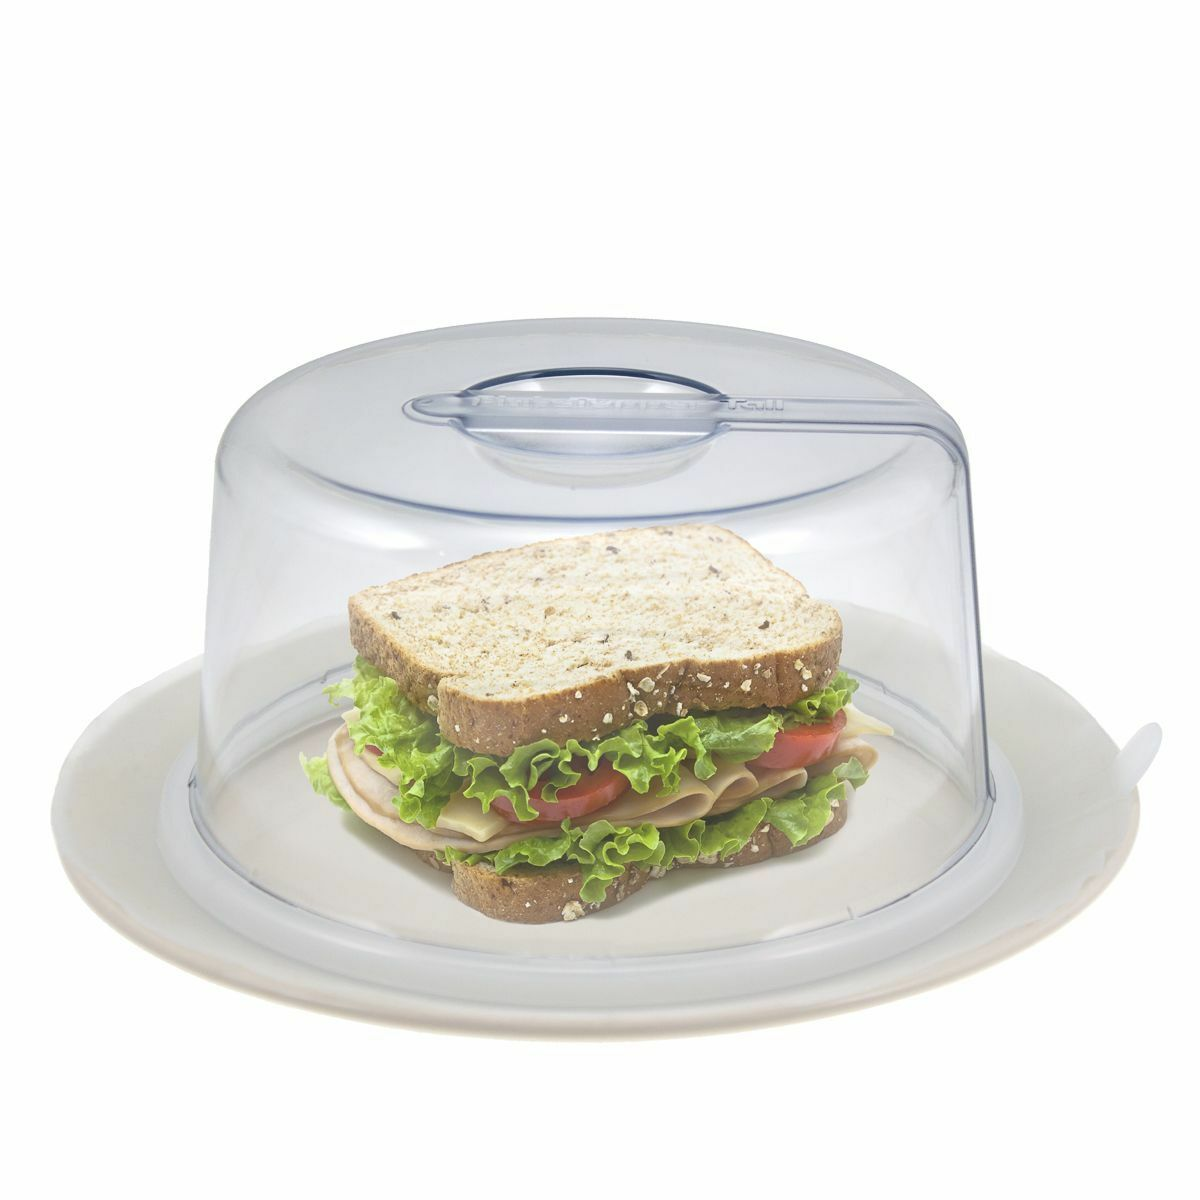 2 Platetopper Mini Tall Universal Leftover Lid Microwave Cover Air Red Ebay